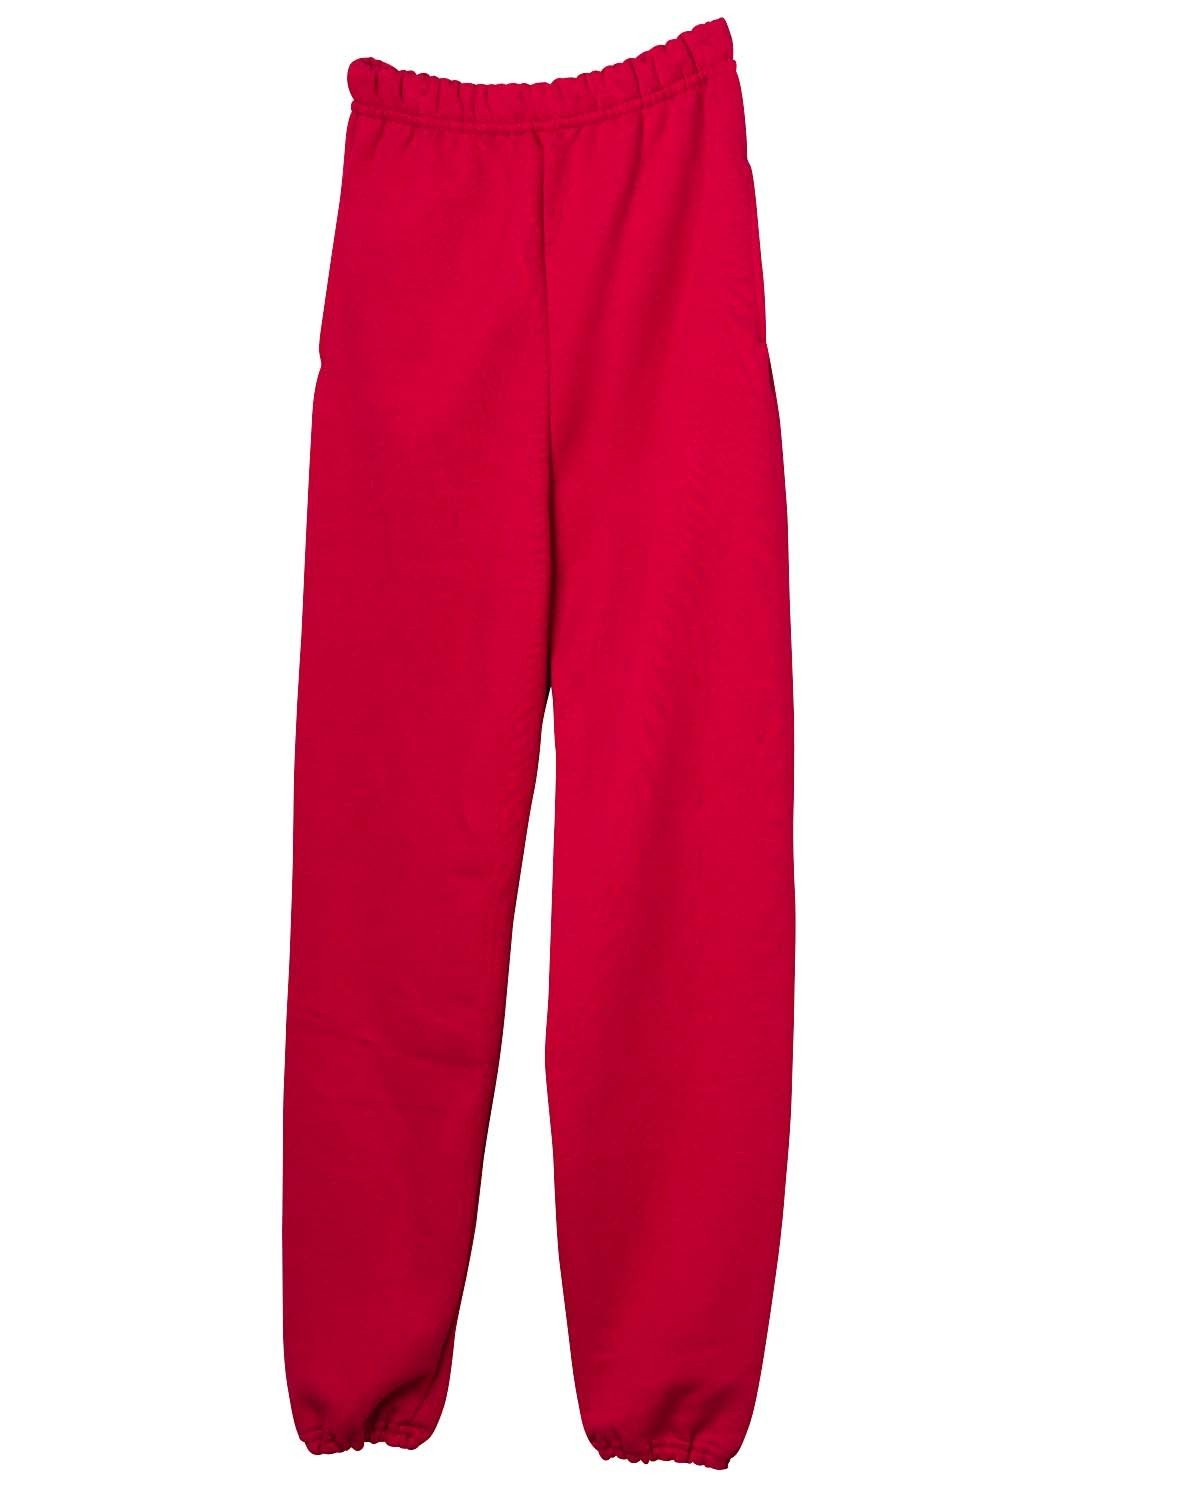 Jerzees 9 oz Sweatpant w Pockets (4850MP) Super Sweats Available in 8 Colors Jerzees 4850P